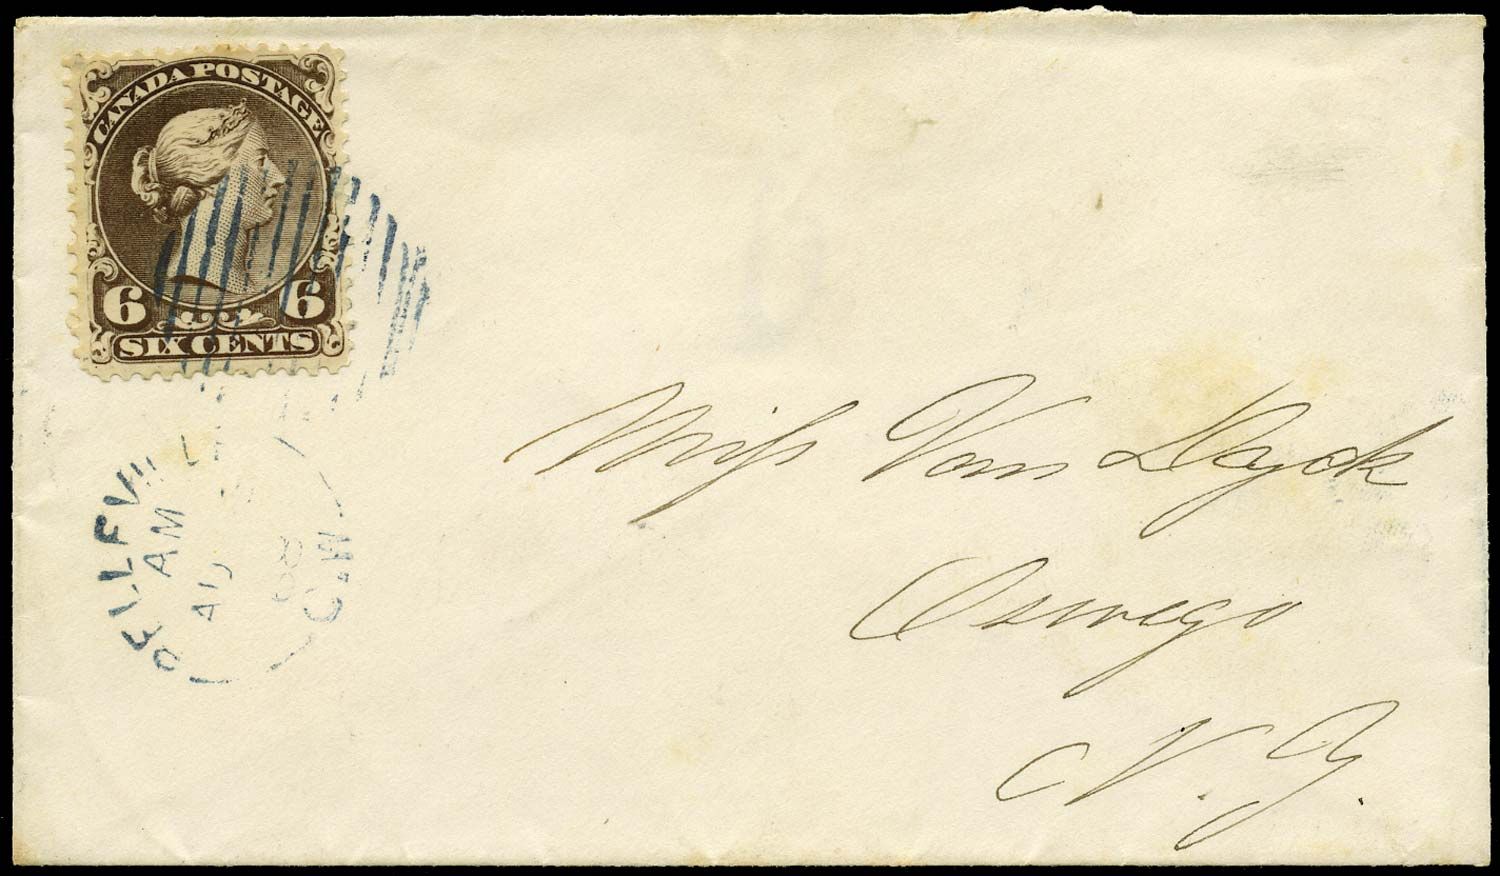 CANADA 1868  SG59 Cover from Belleville to New York with 6c Large Queen